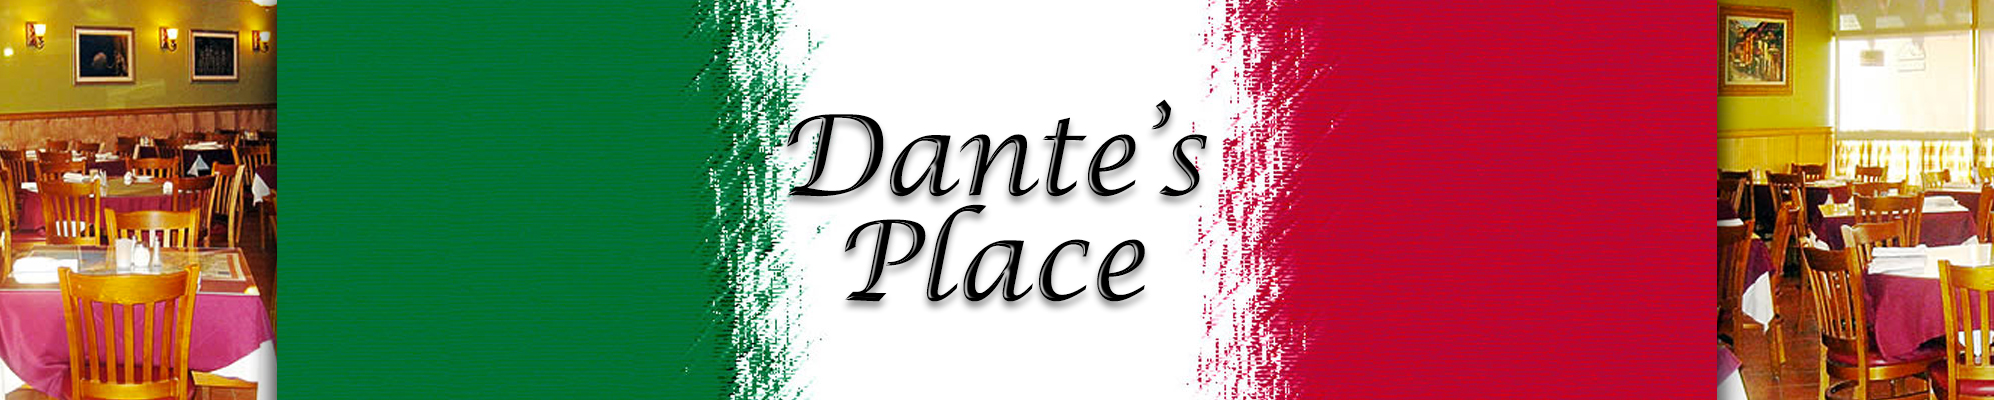 Welcome to Dante's P